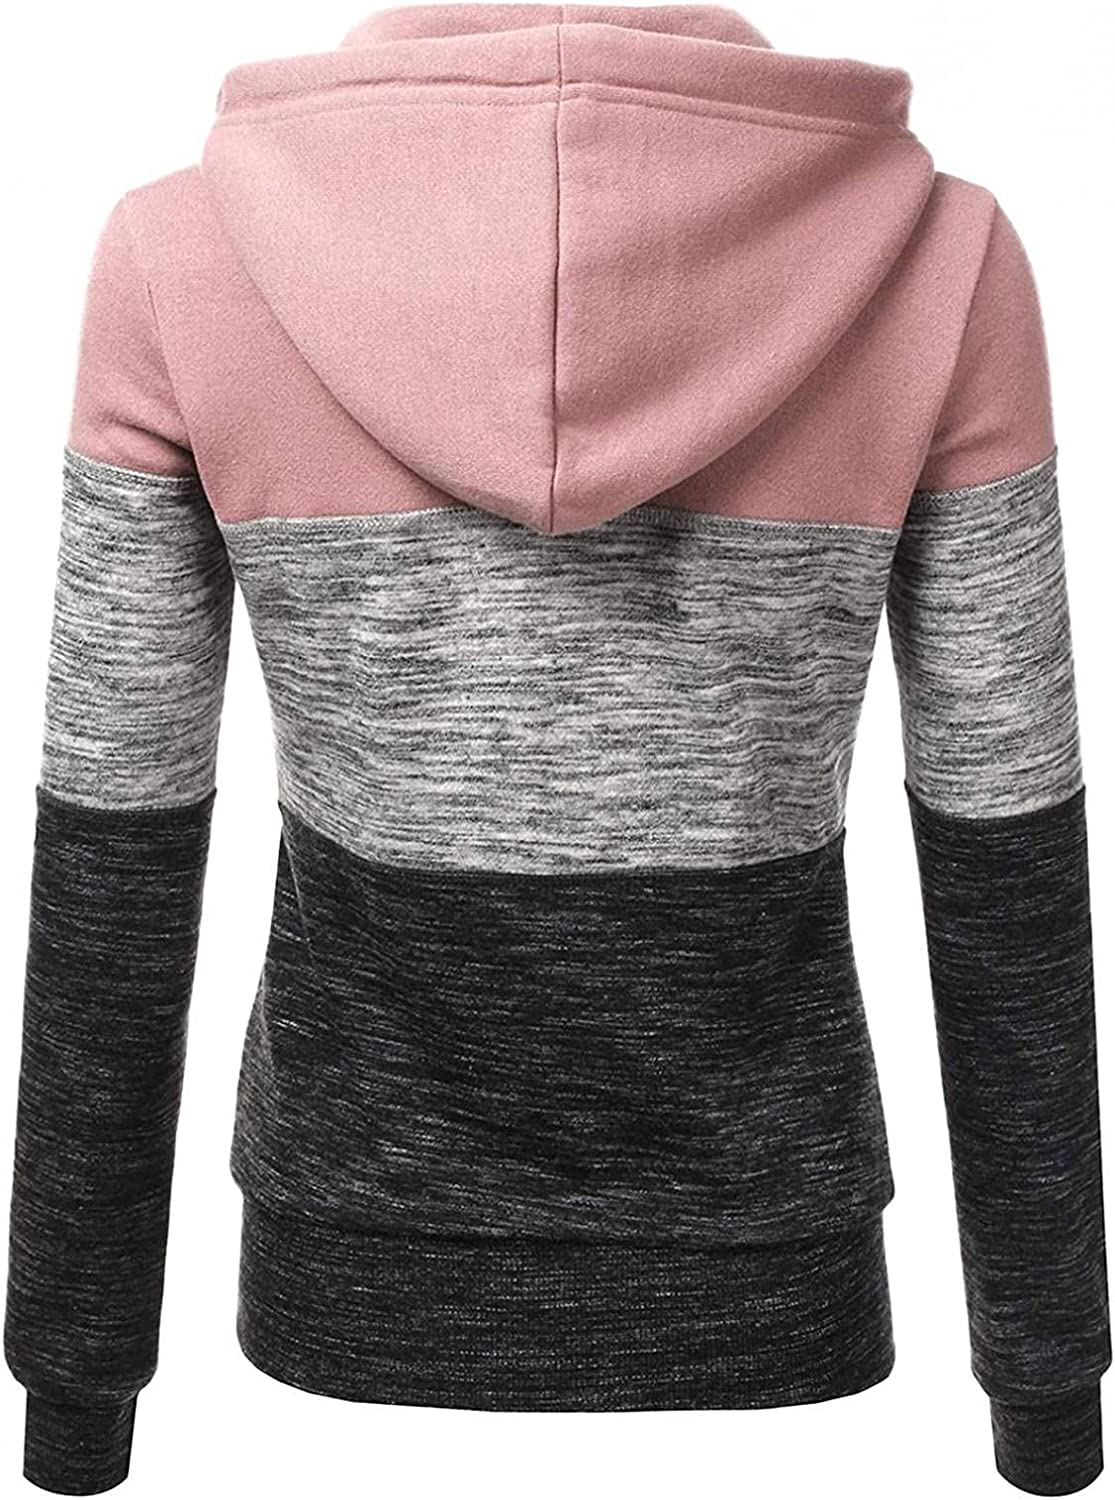 Kcocoo Lightweight Thin Zip-Up Hoodie Jacket for Women Long Sleeve Fall Sweatshirts Casual Drawstring Cardigans with Pockets